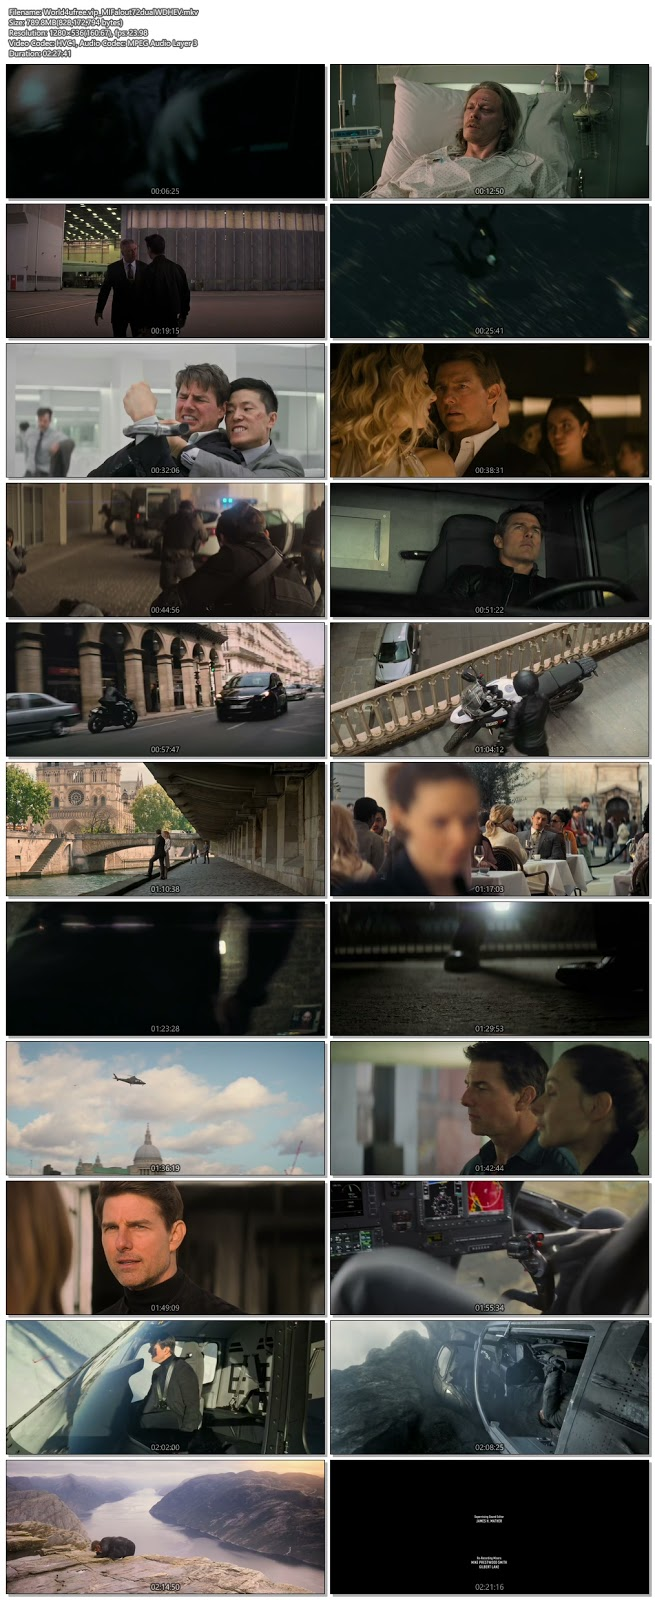 Mission Impossible Fallout 2018 Dual Audio 720p HDRip 750Mb HEVC world4ufree.vip , South indian movie Mission Impossible Fallout 2018 hindi dubbed world4ufree.vip 720p hdrip webrip dvdrip 700mb brrip bluray free download or watch online at world4ufree.vip